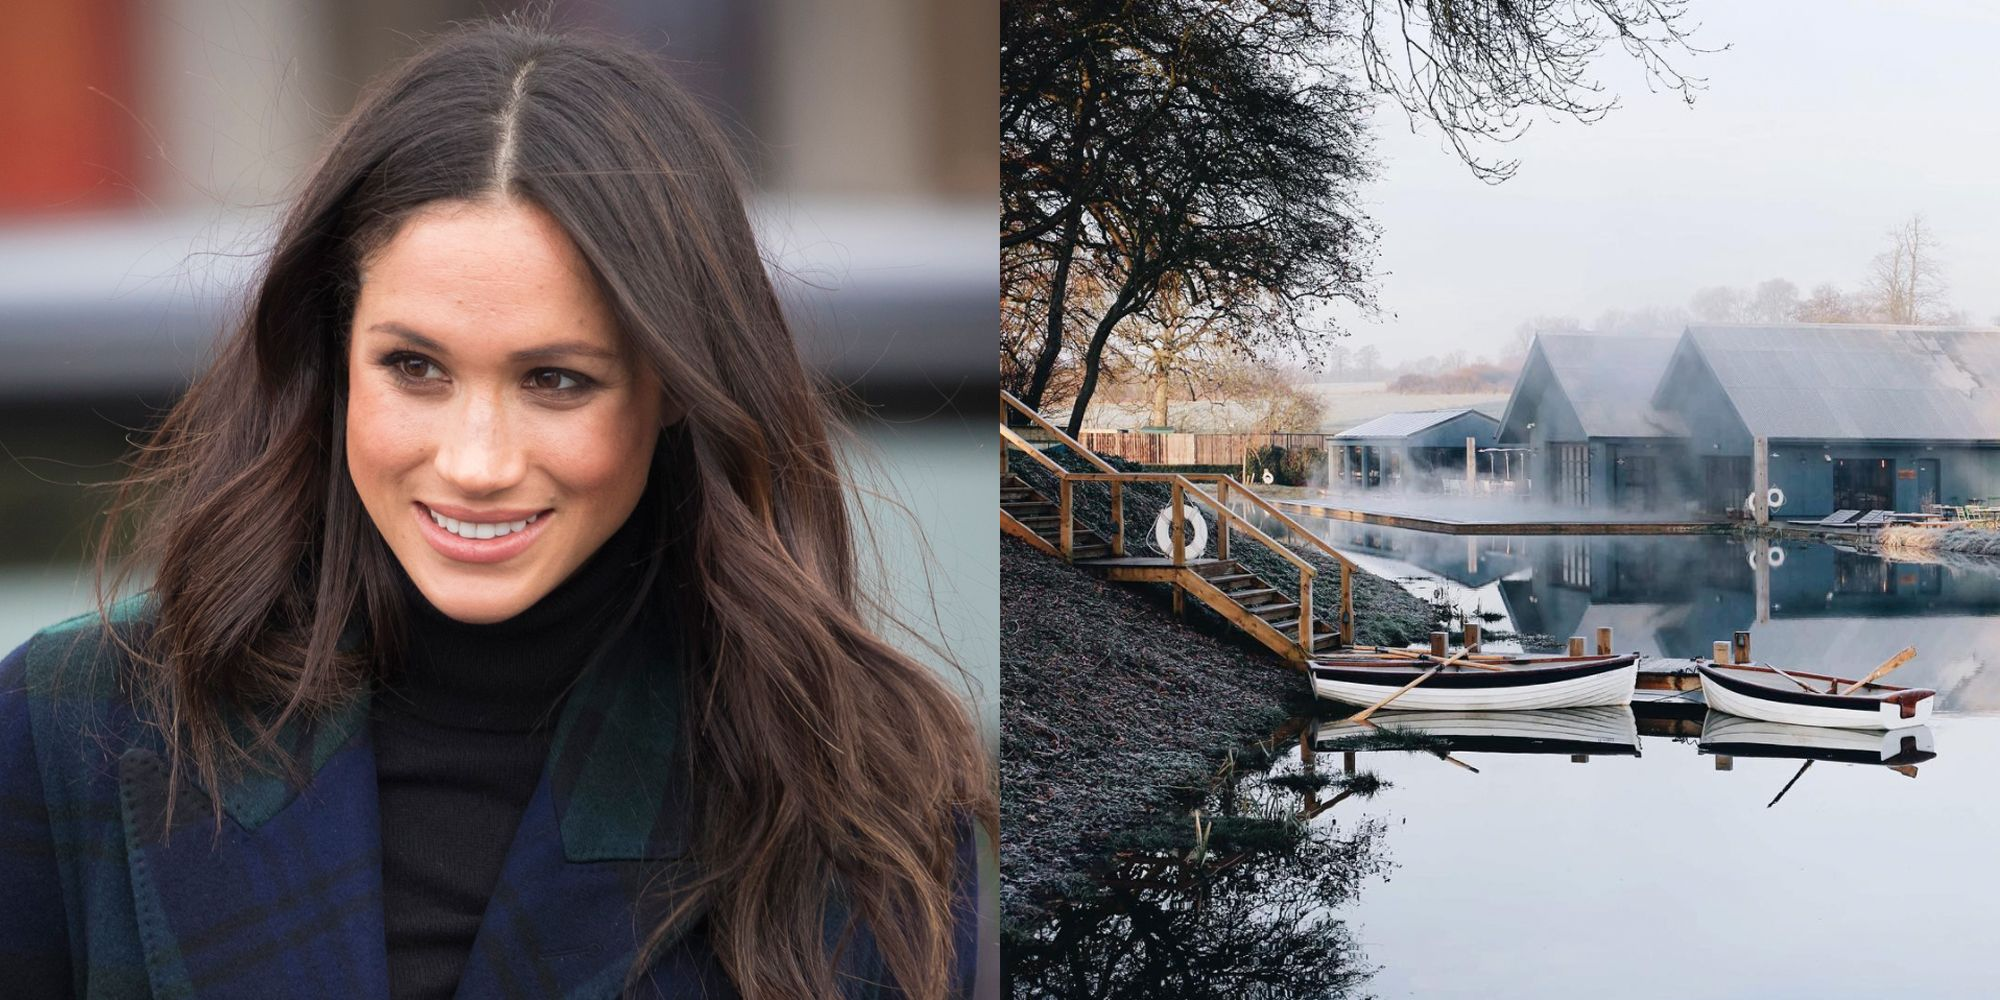 fa4badf20c54 Meghan Markle Has Bridal Shower at Soho Farmhouse - Details on Meghan s  Spa-Themed Shower